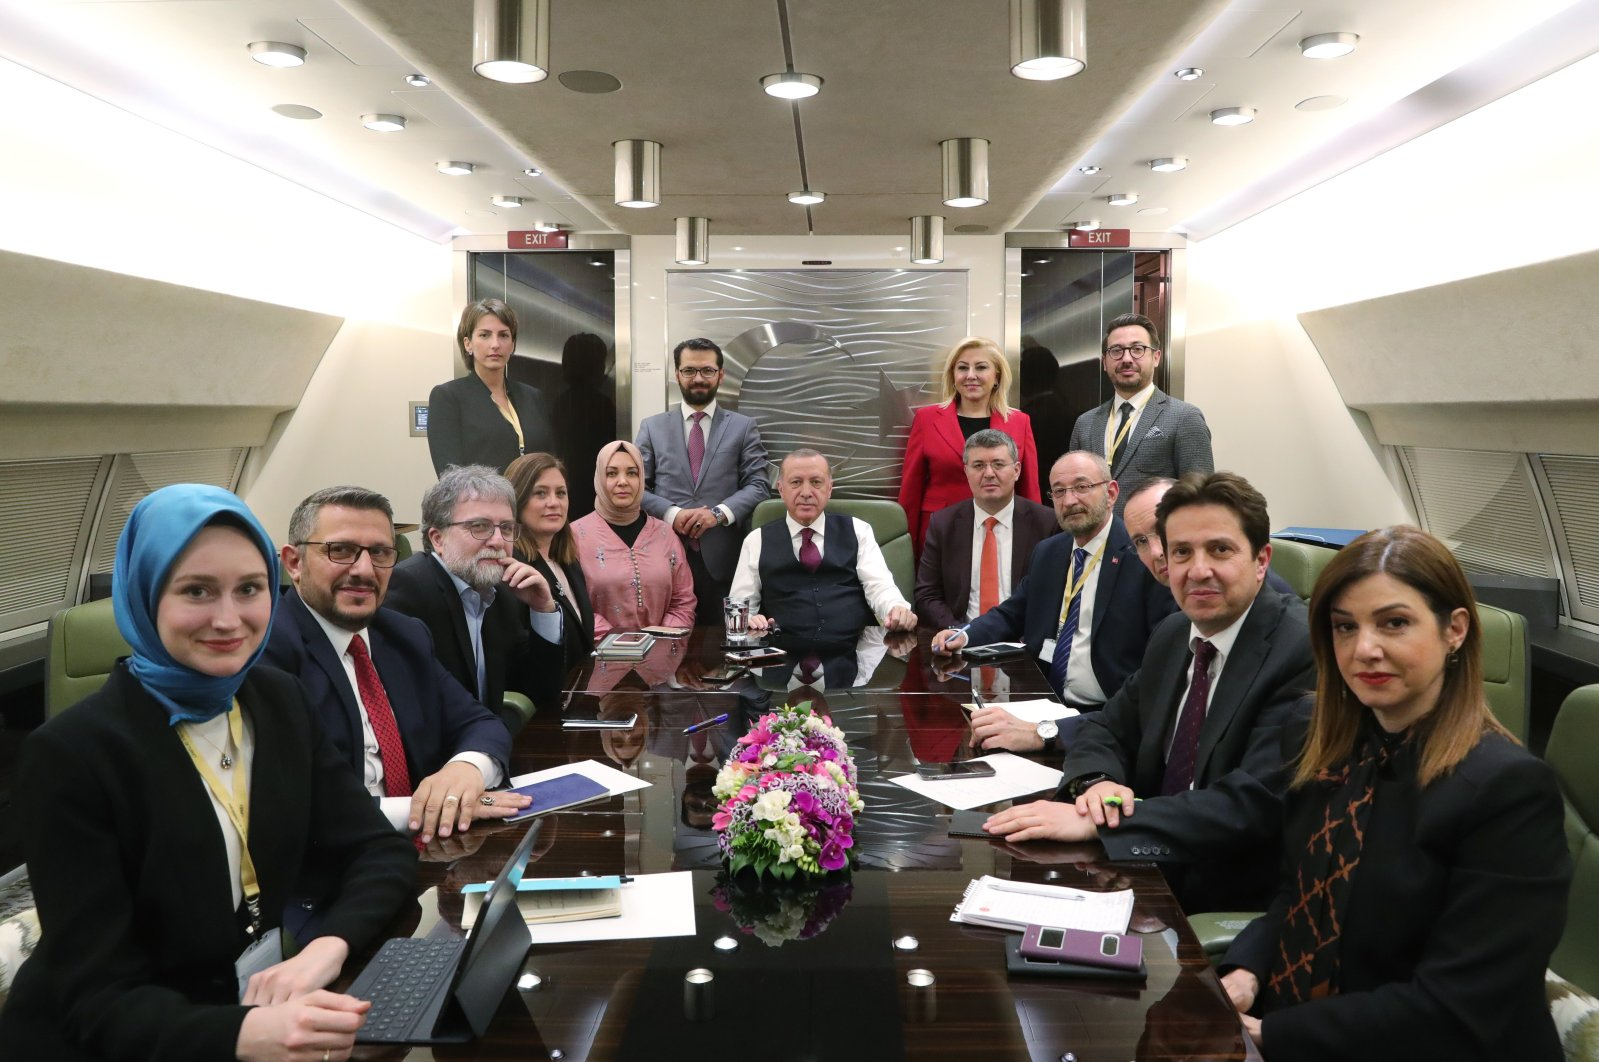 President Recep Tayyip Erdoğan (C) with journalists, including Daily Sabah's Ankara Chief Nur Özkan Erbayon, on the presidential plane on his way back from Brussels, March 9, 2020.